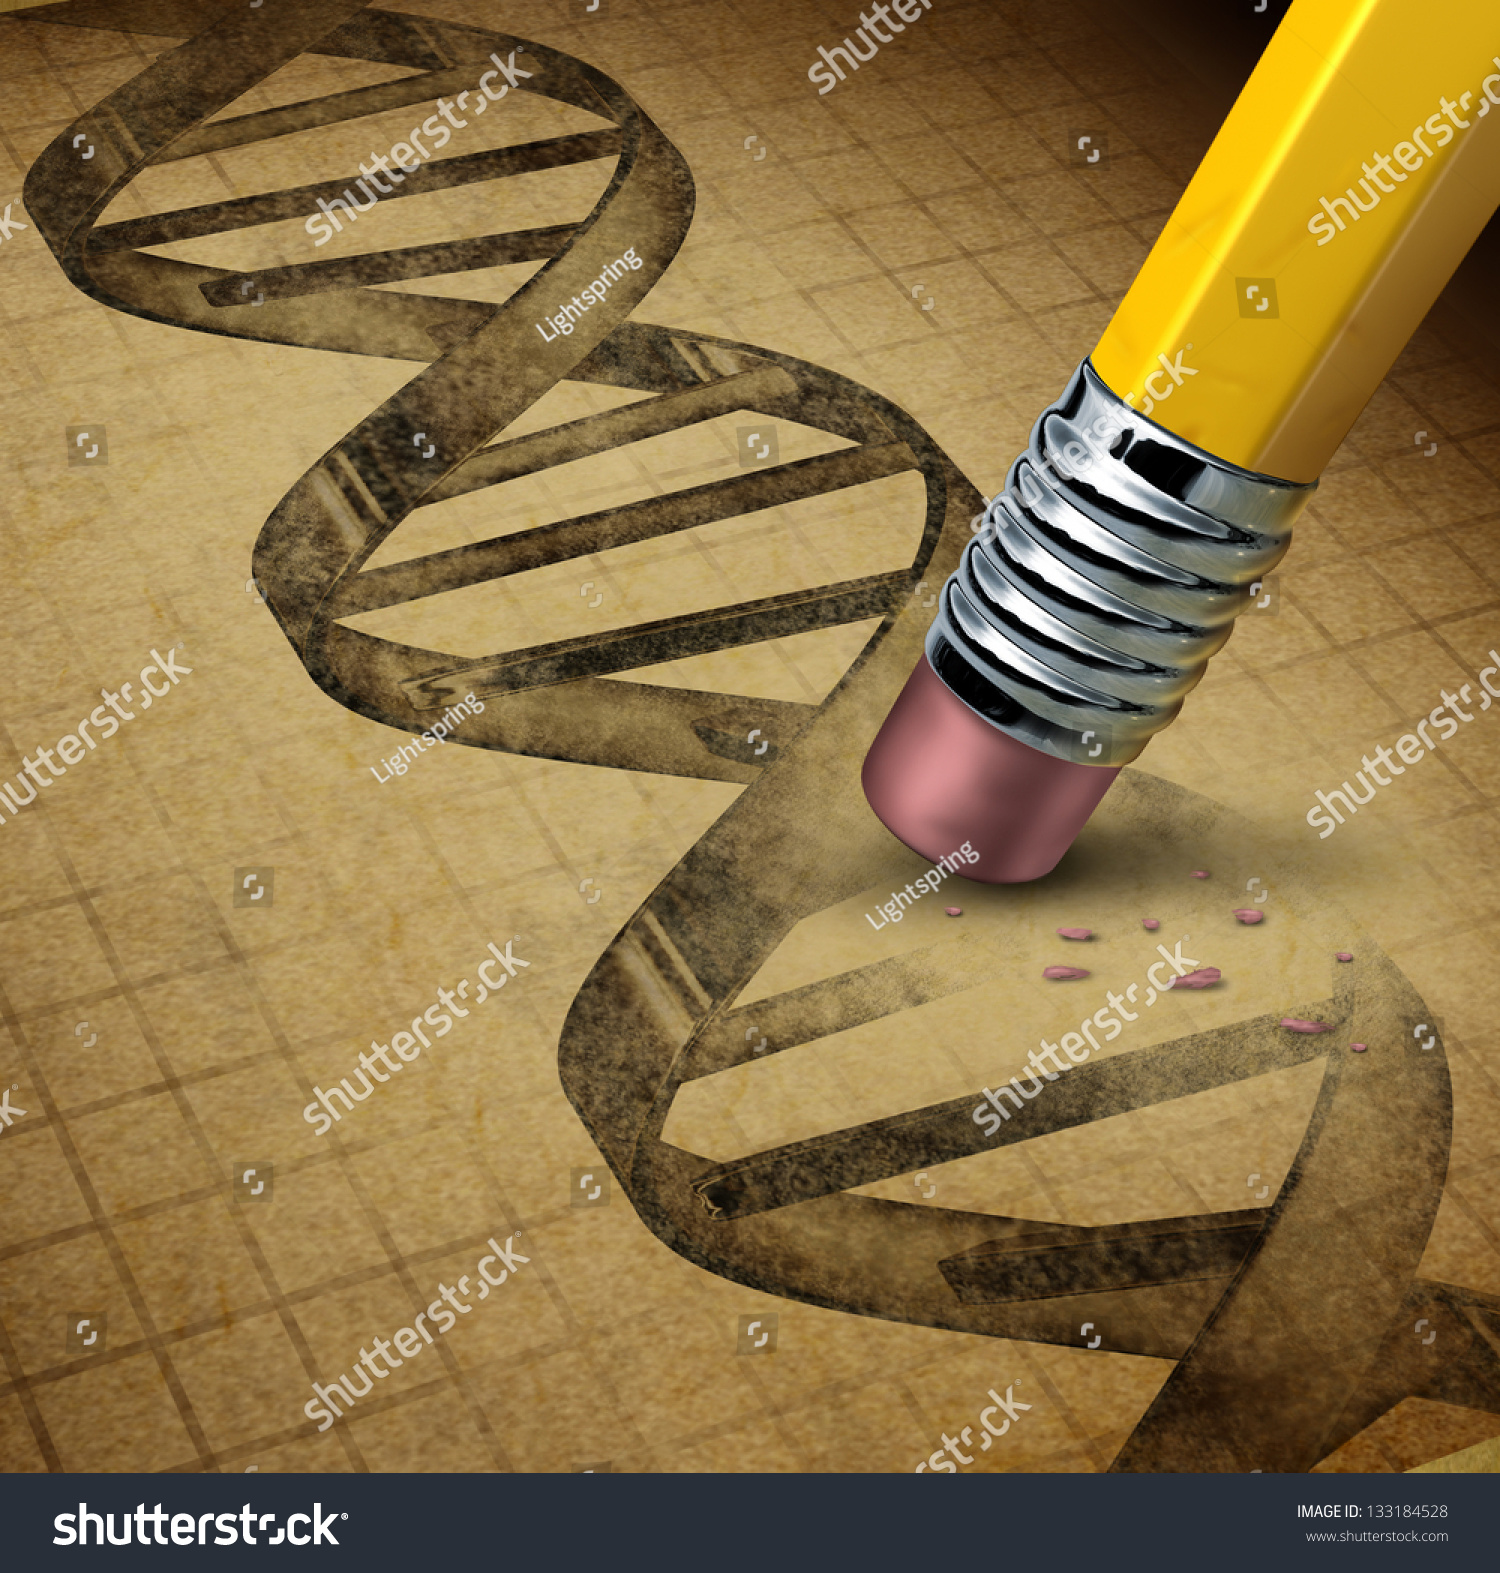 cloning and genetic modification of crops Fda regulation of intentionally altered genomic dna in animals, which includes alterations introduced into the dna of an organism using modern molecular technologies, such as genetic engineering .